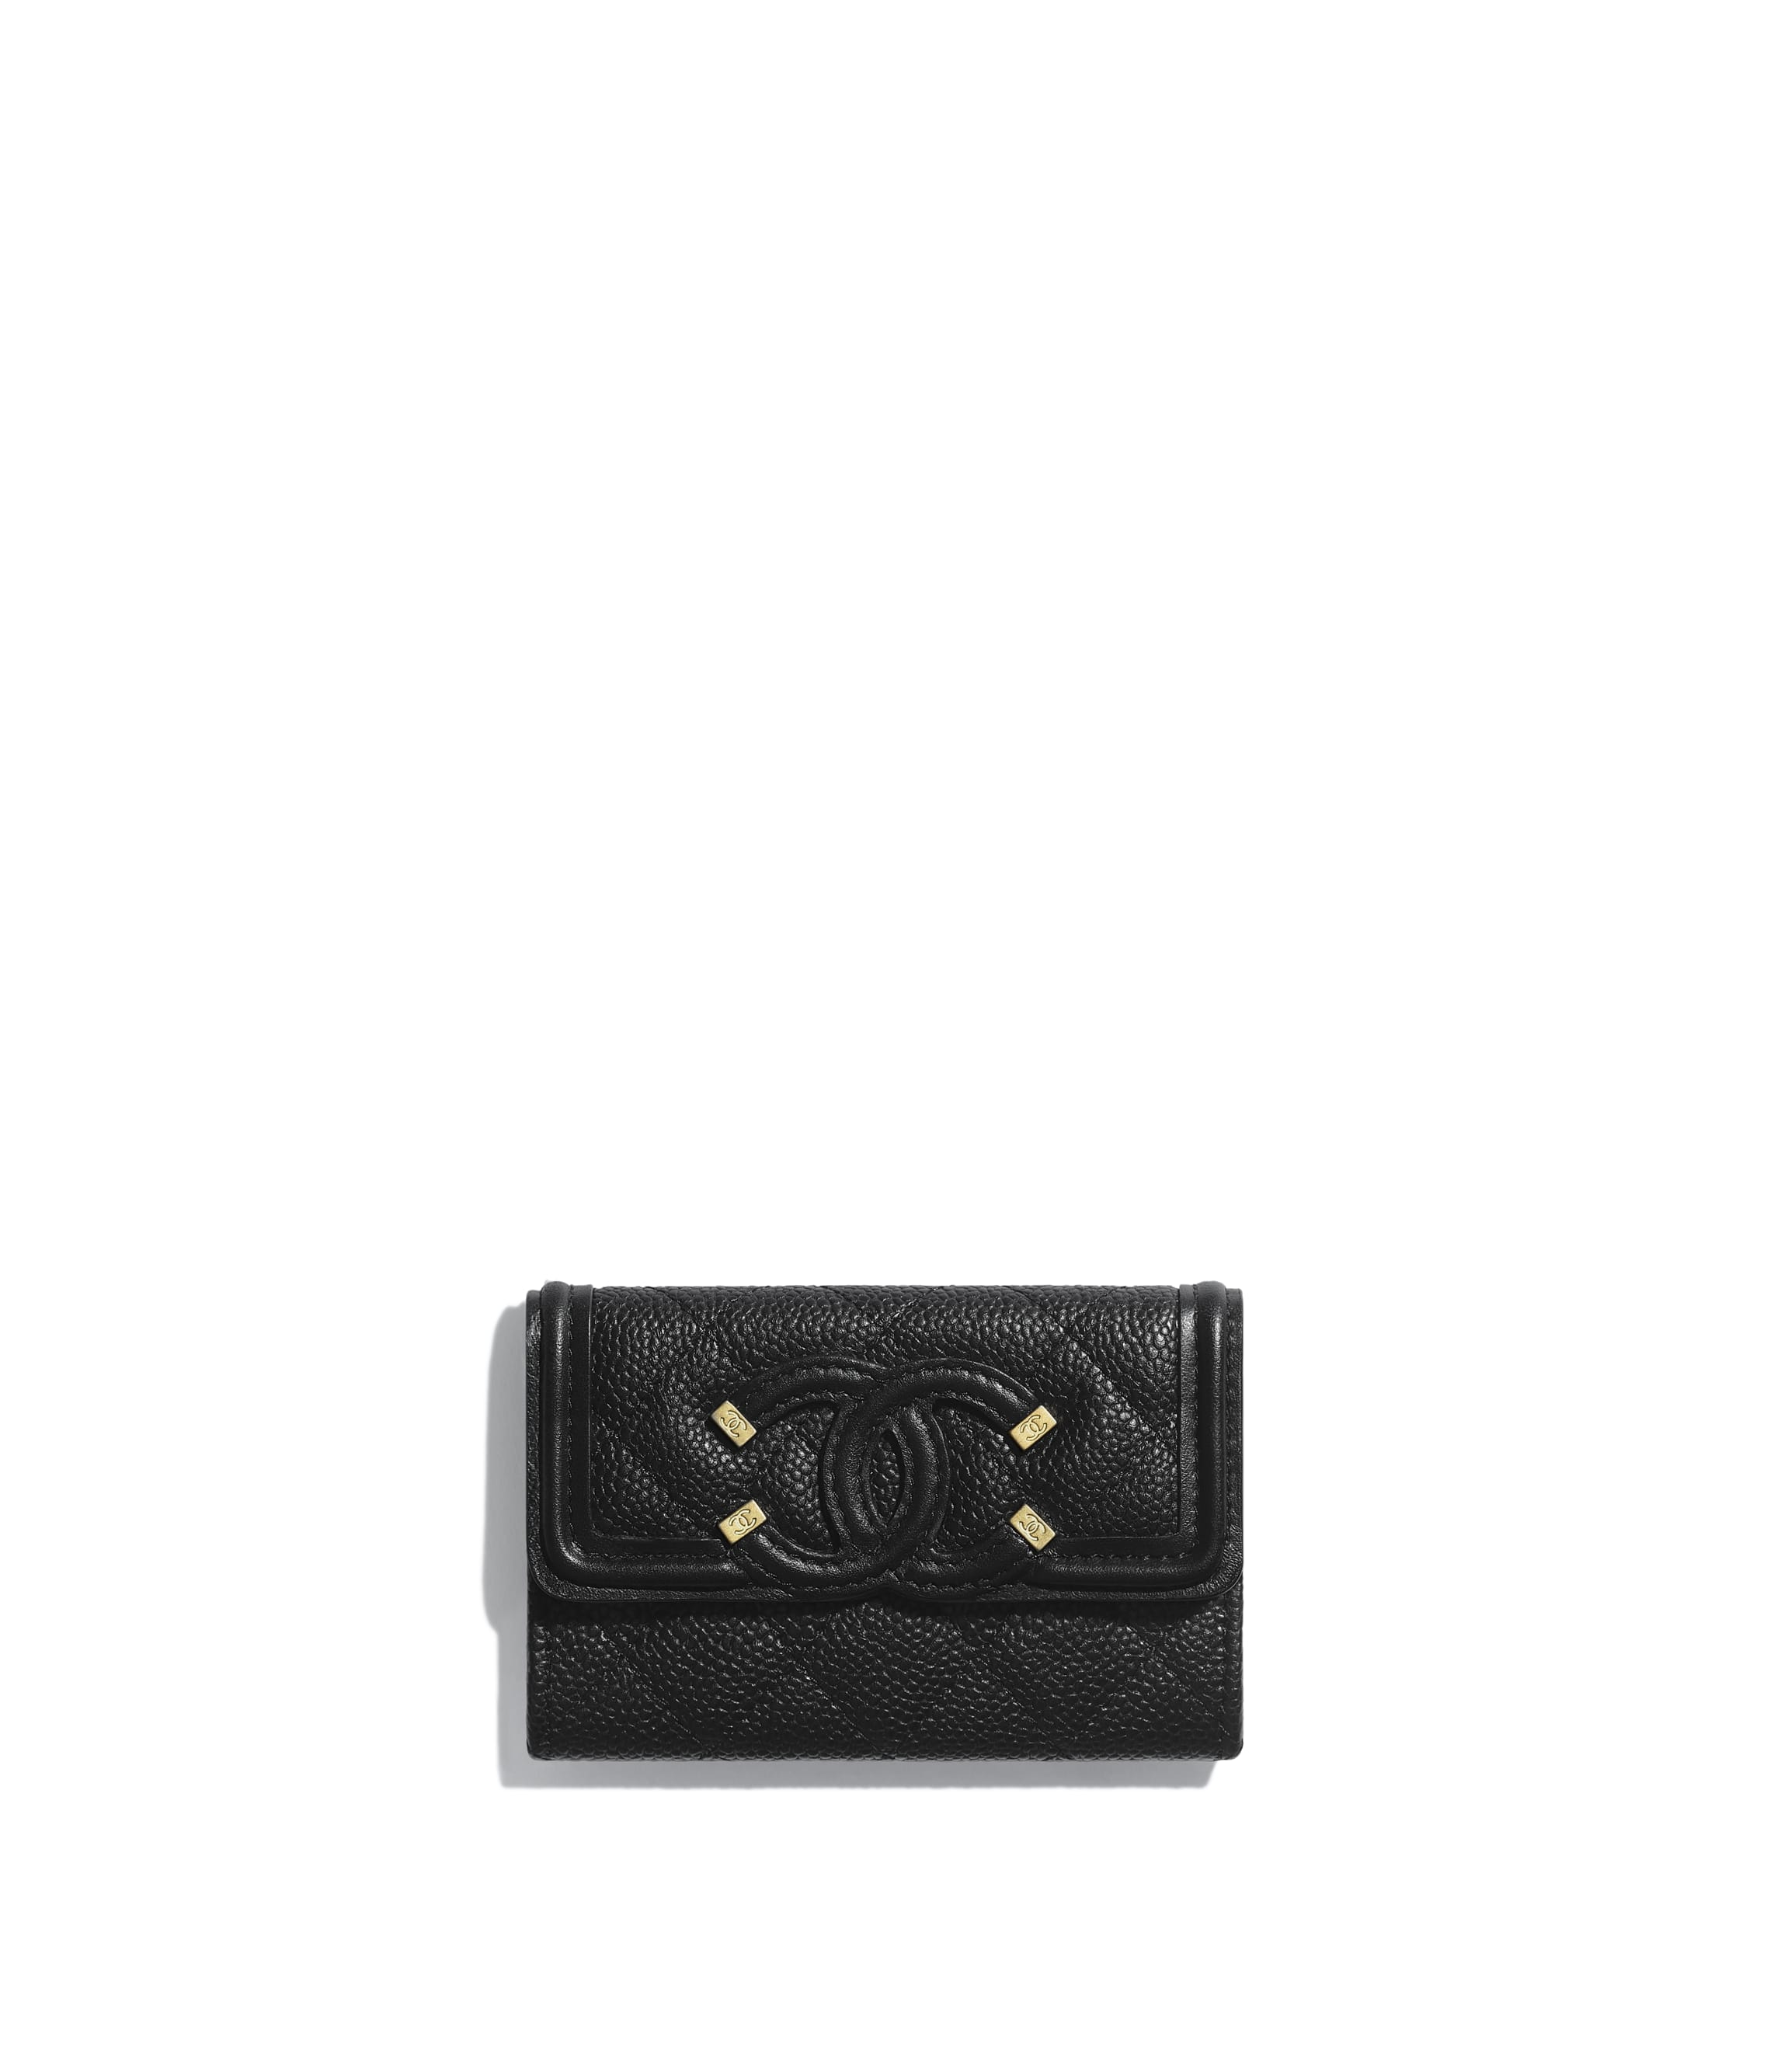 273841429163ab Card Holders - Small Leather Goods - CHANEL